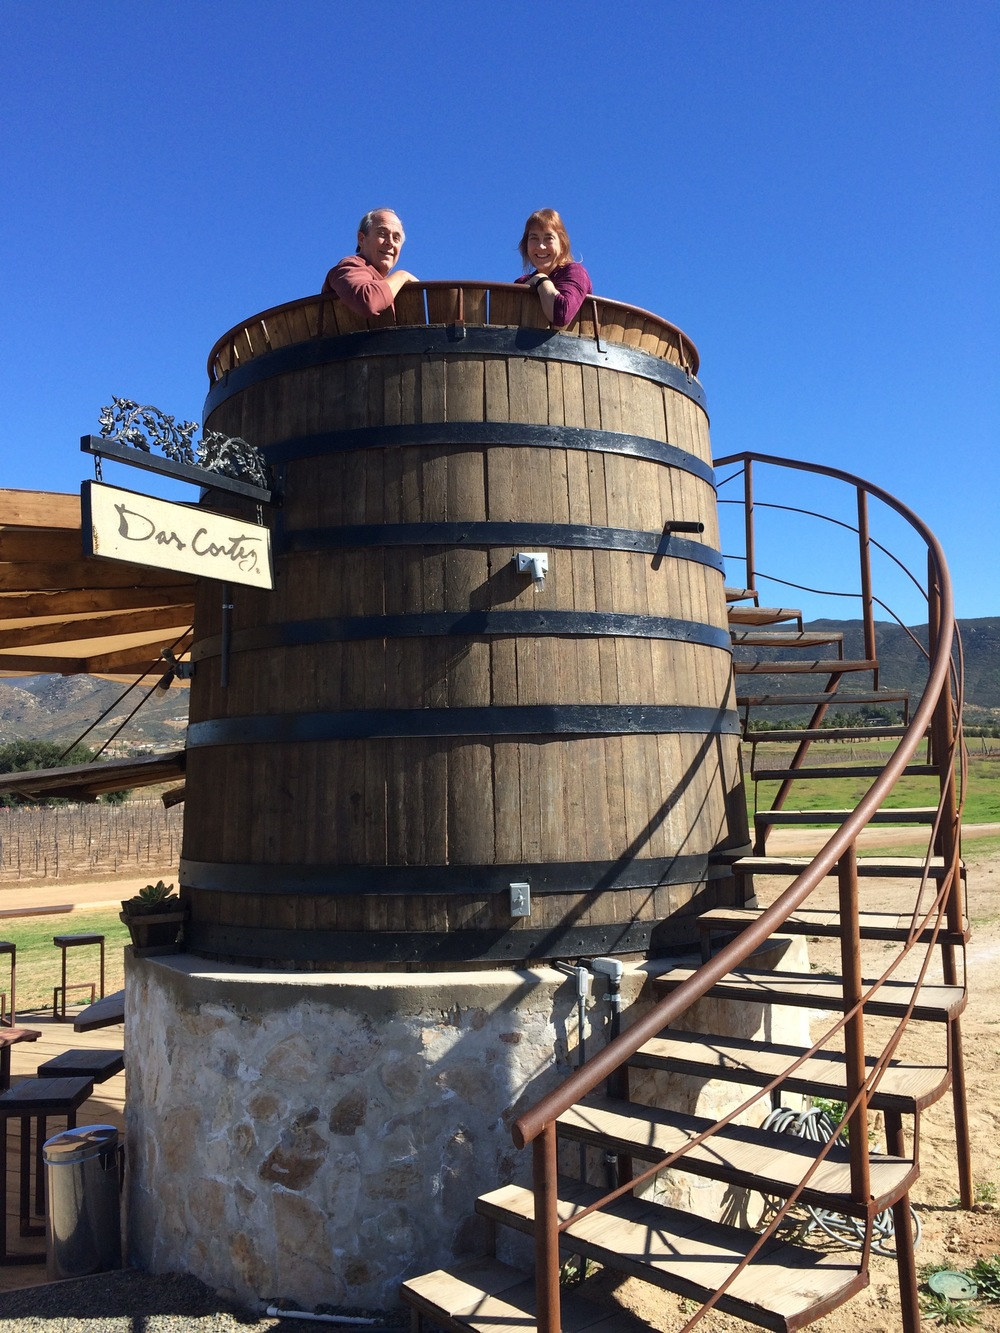 Princess cruise ship passengers Doug and his wife Linda on tour with BTK, enjoying the vineyard views from atop this unique wine barrel perch at Finca Altozano.